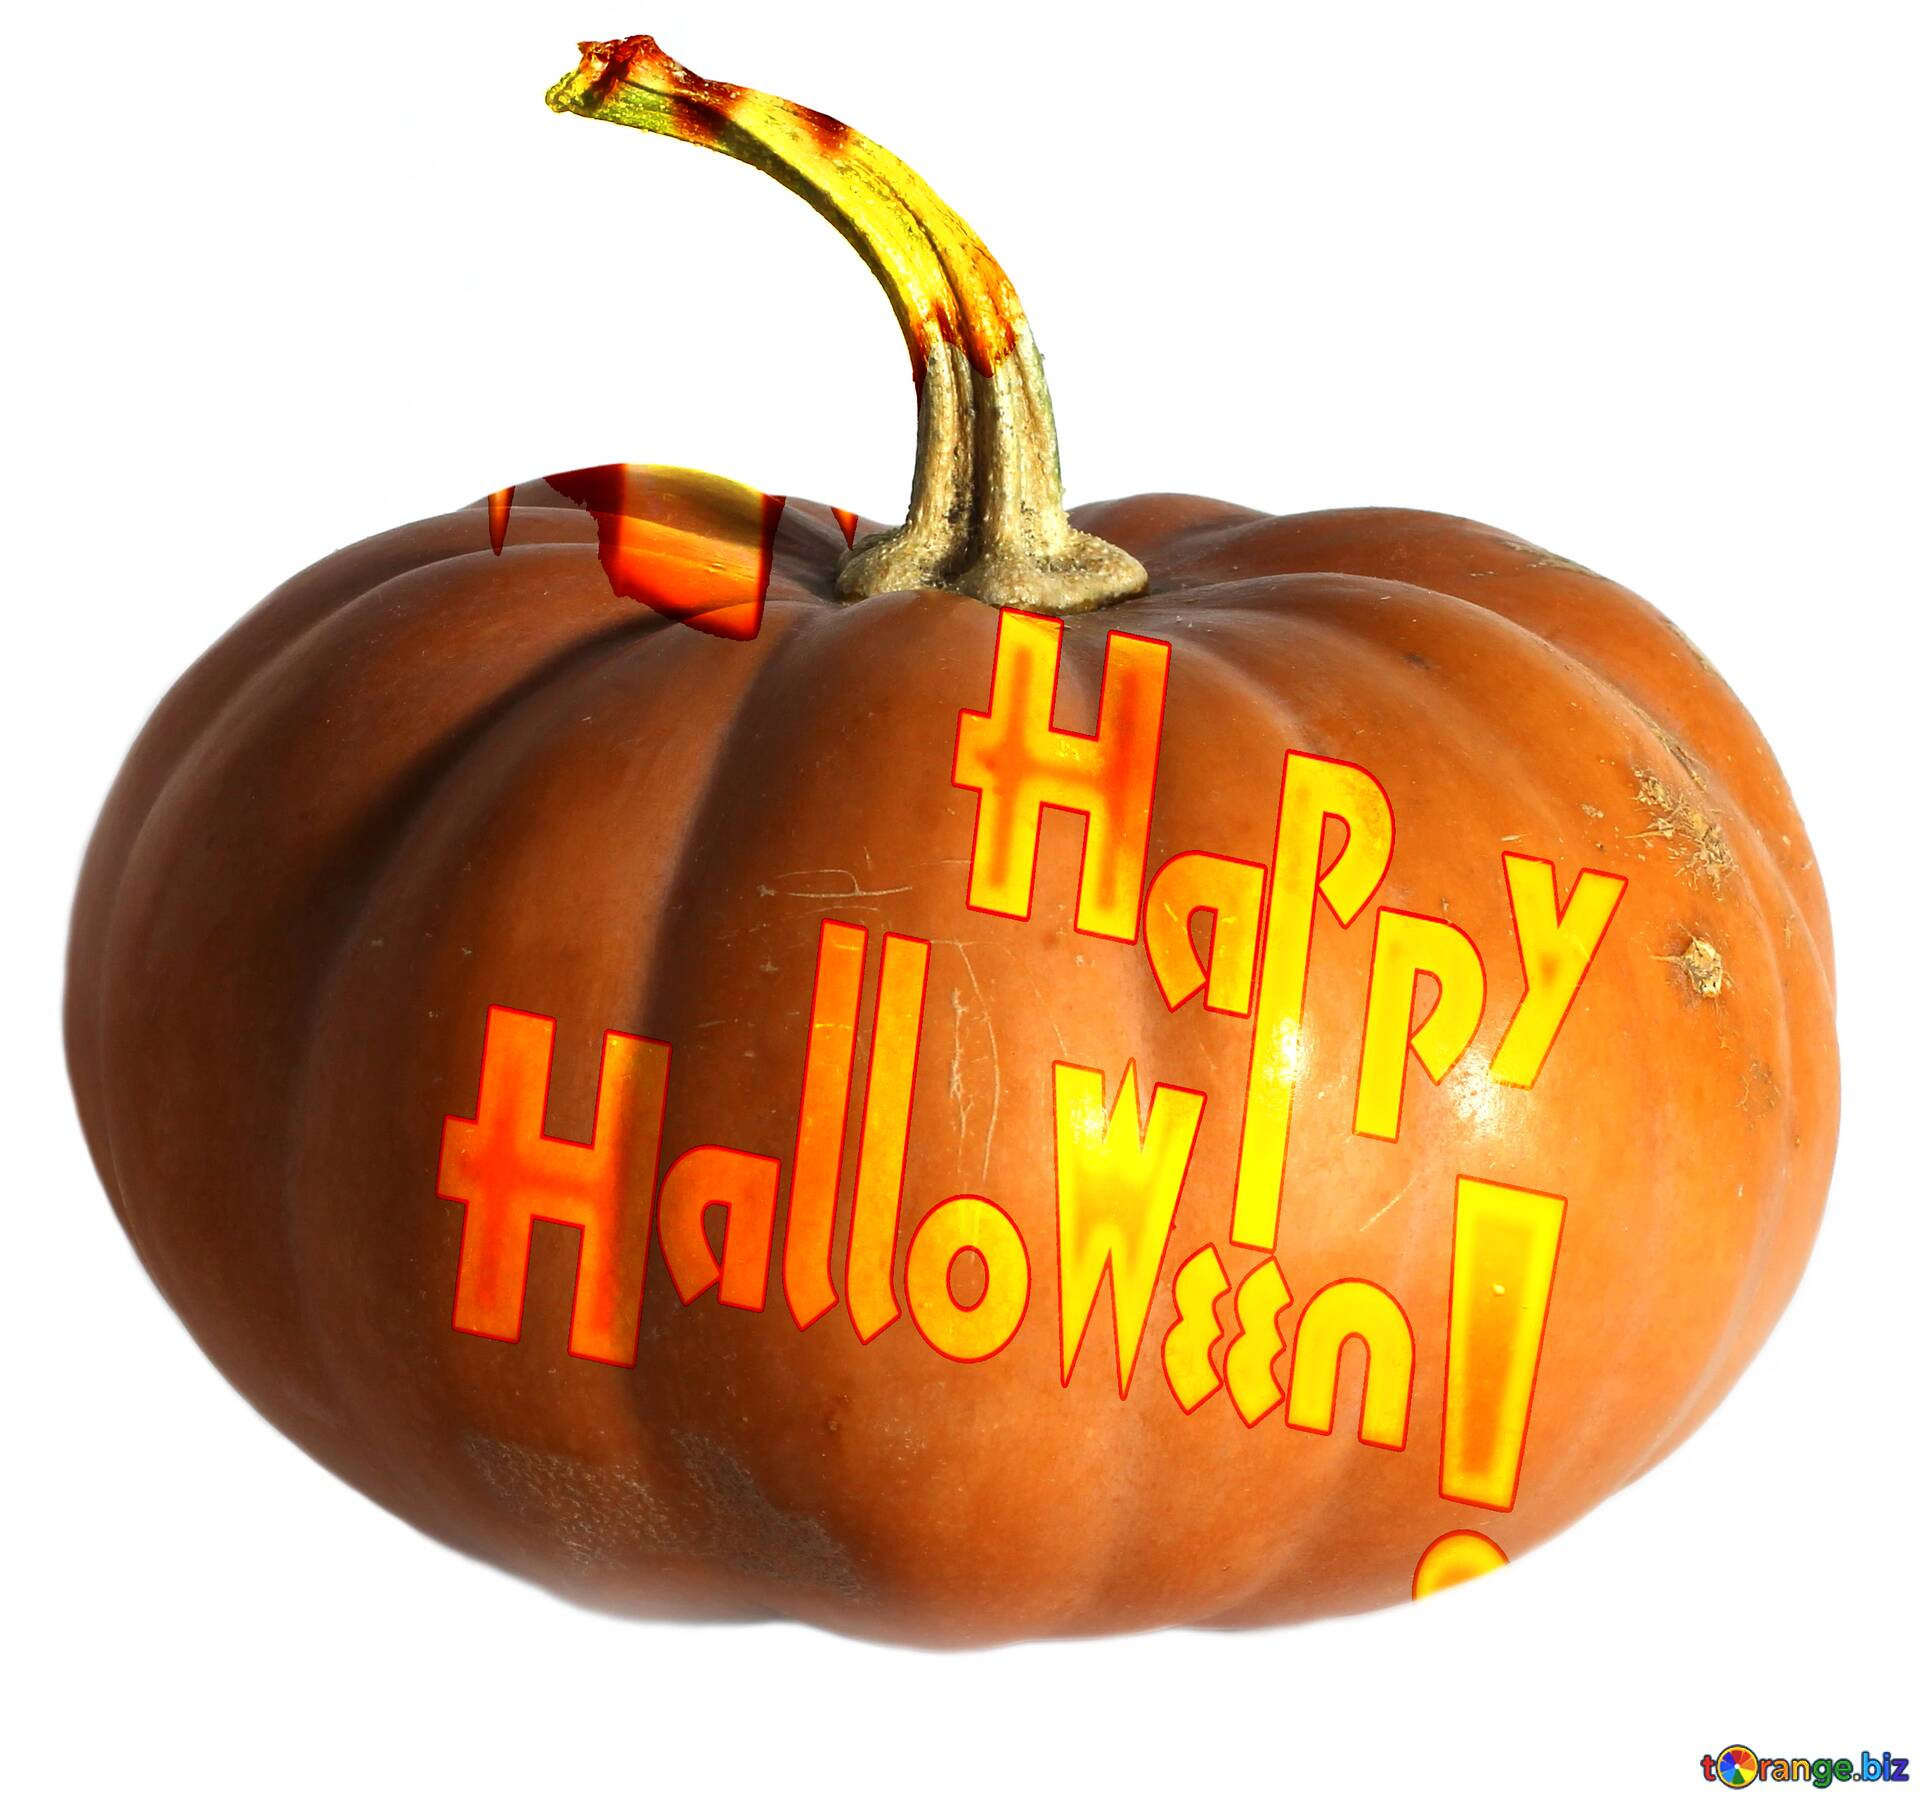 Download Free Picture Happy Halloween Lettering Inscription Isolated Pumpkin On Cc By License Free Image Stock Torange Biz Fx 182564